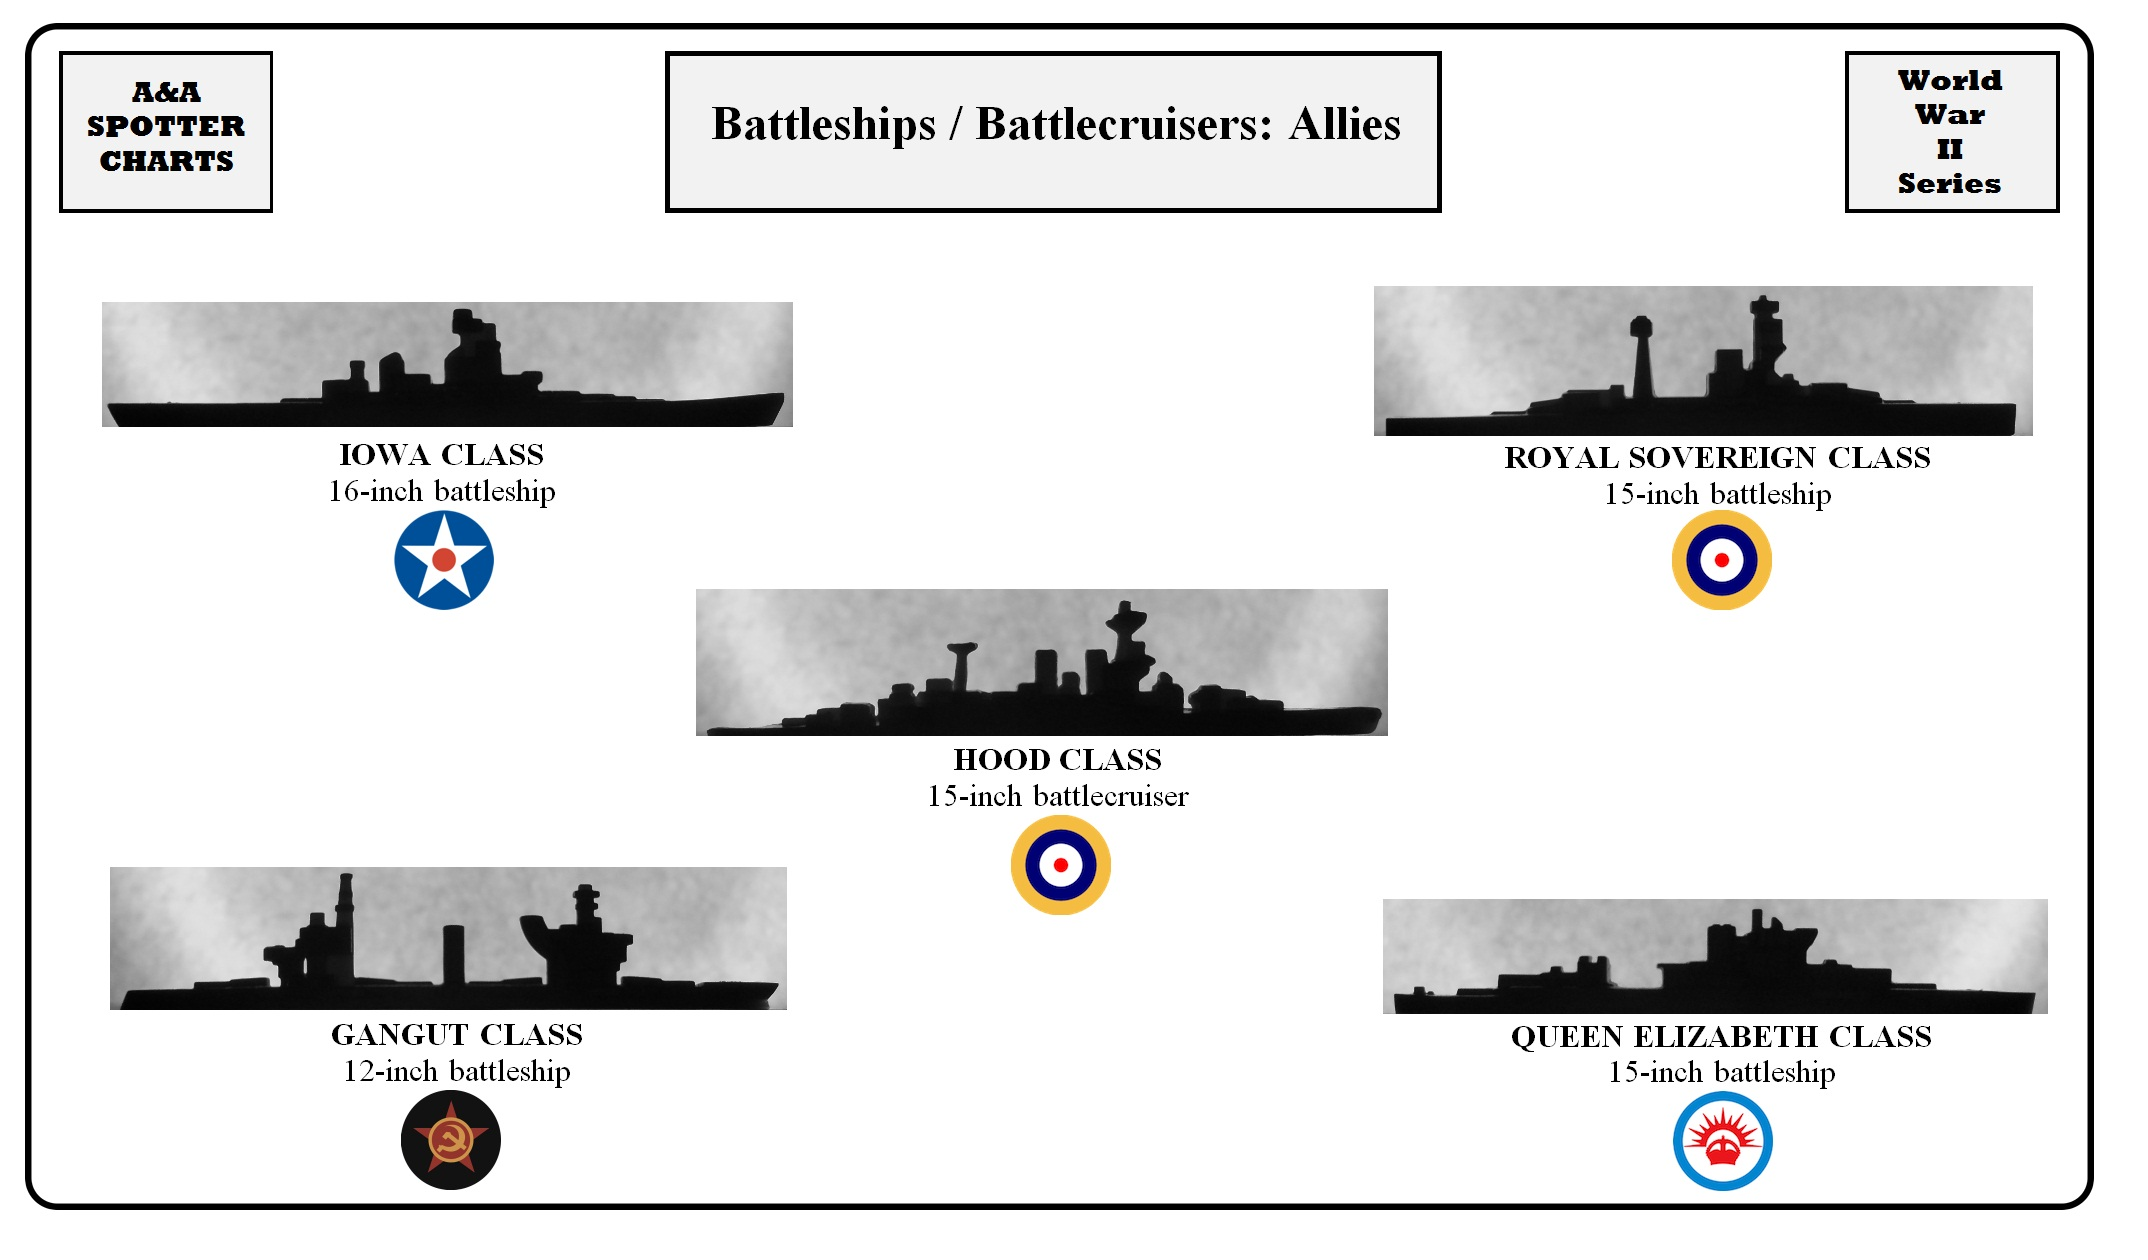 WW2-Sea-Battleships & Battlecruisers-Allies.jpg